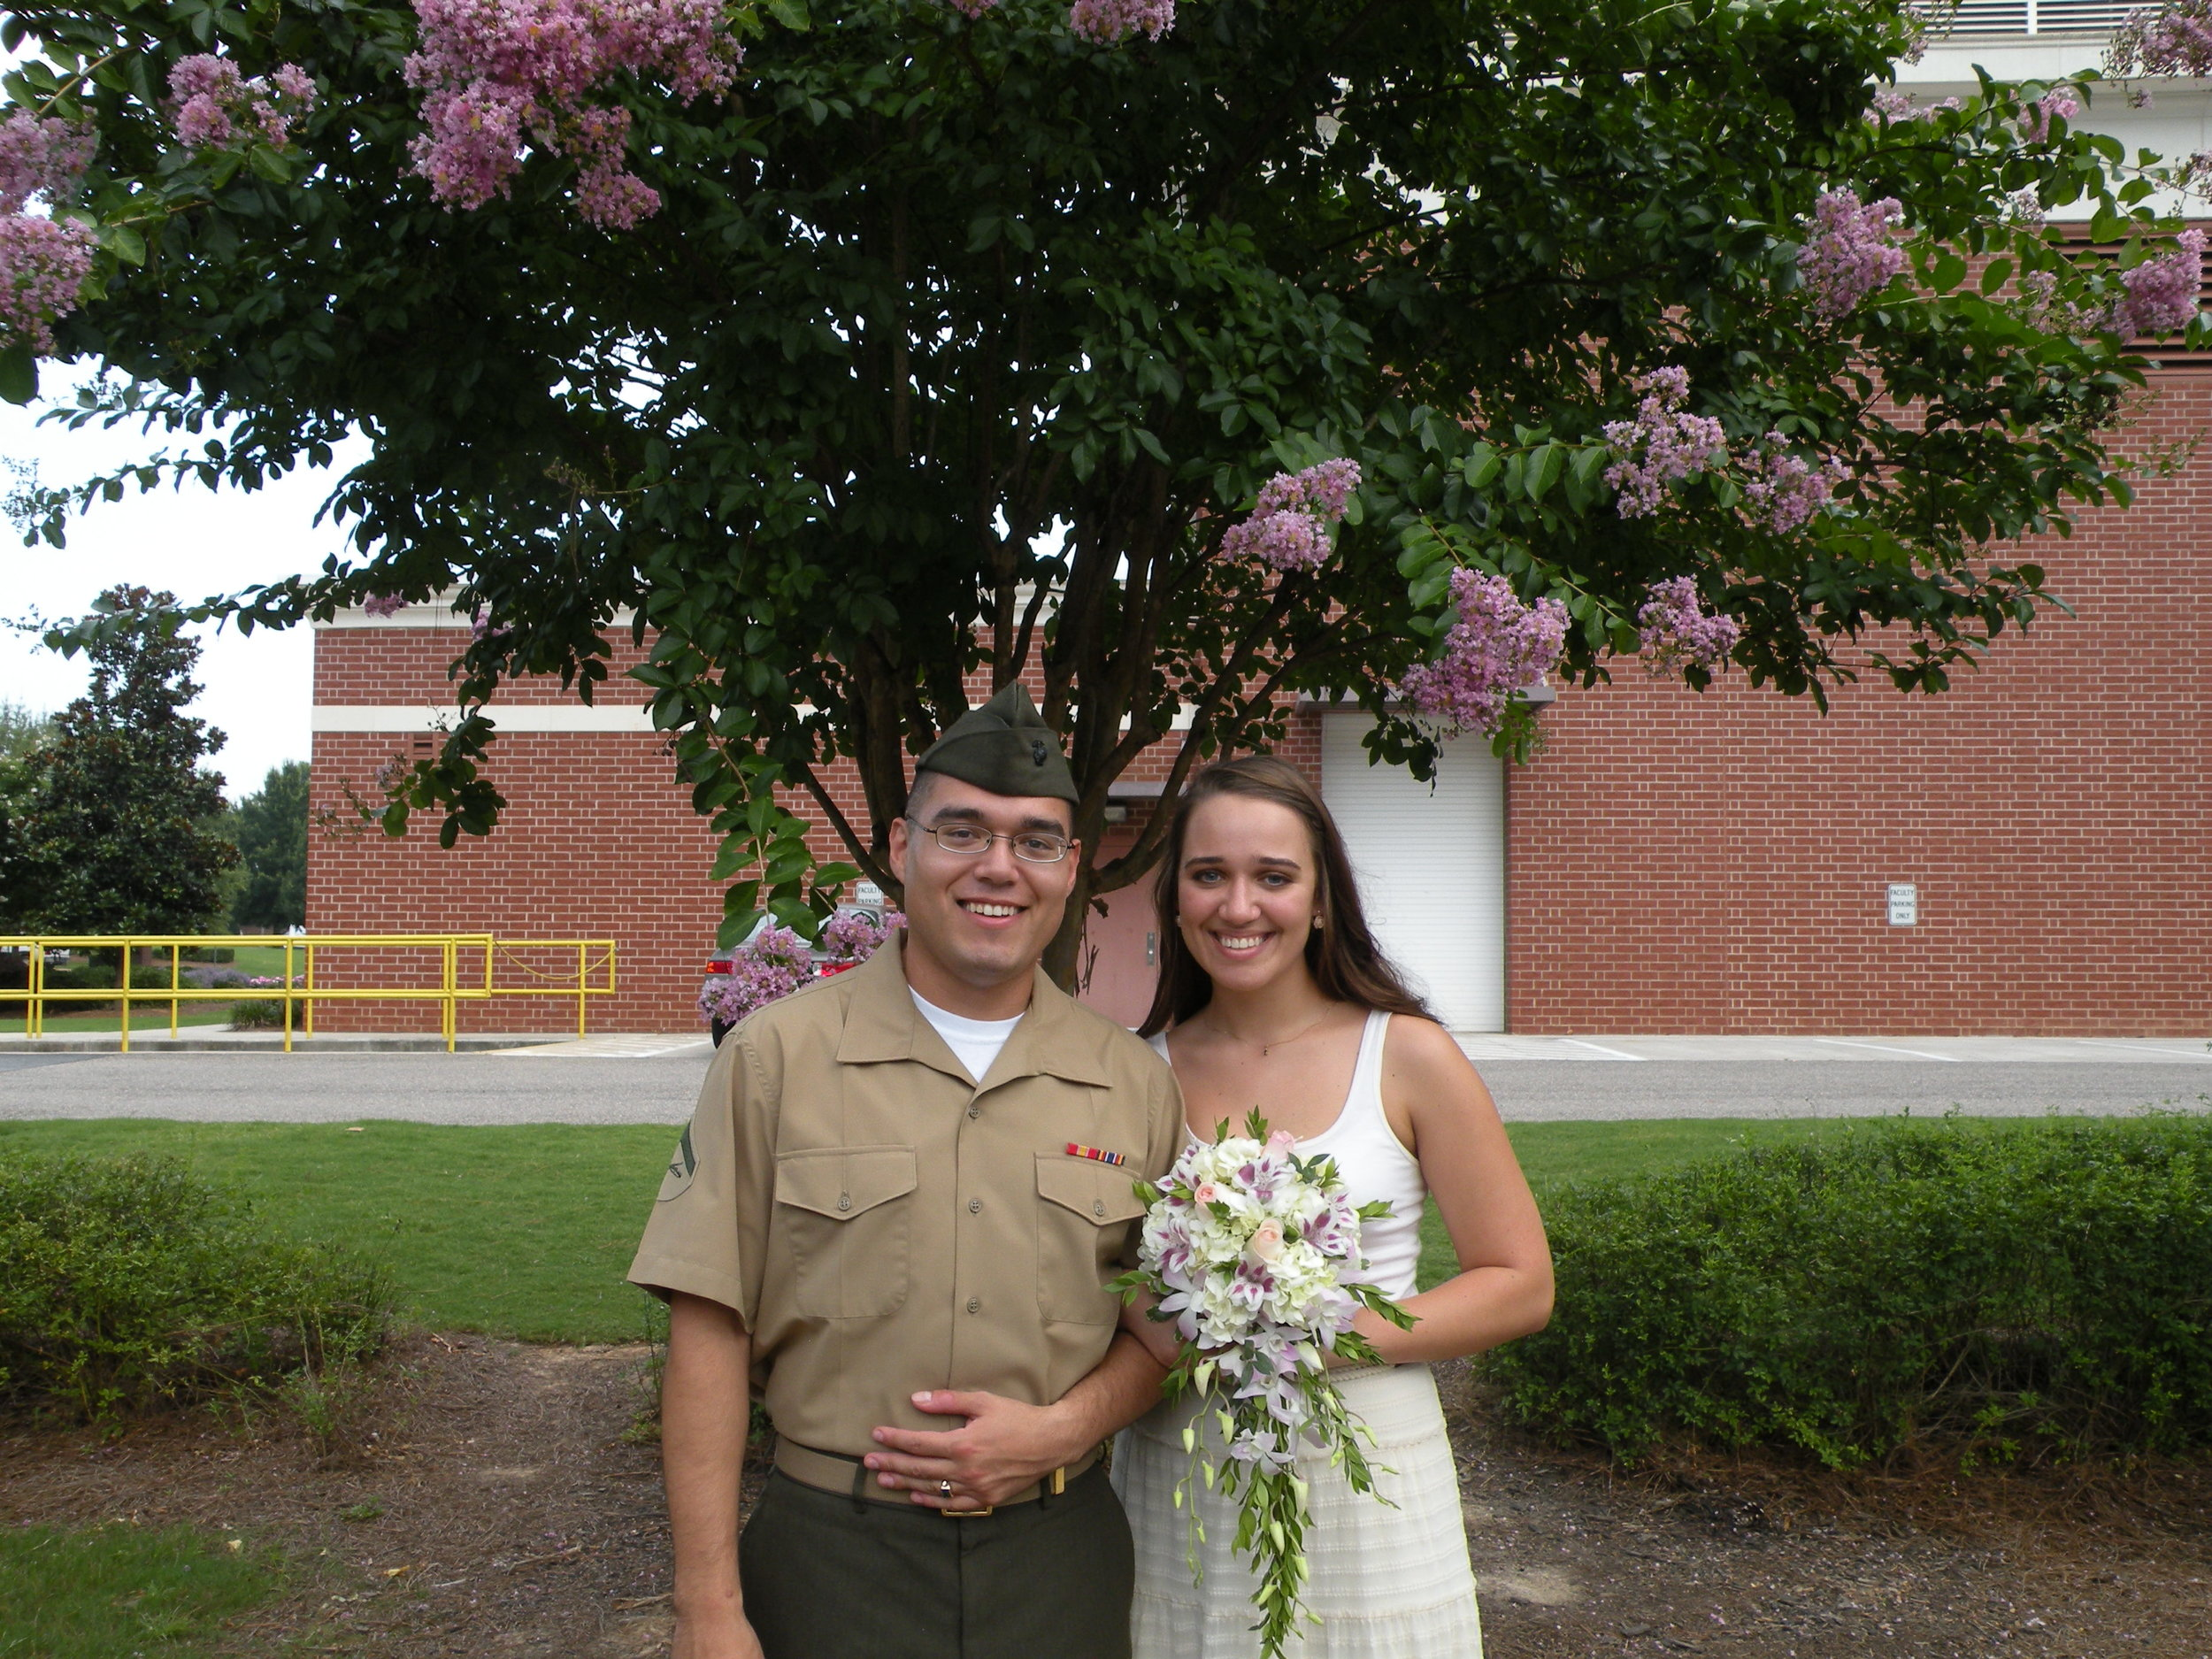 26 July 2013, Columbia County Courthouse. A photo from our legal marriage. We got married with four other couples and one of them let everyone borrow her flowers. Not glamorous, but we were so happy.